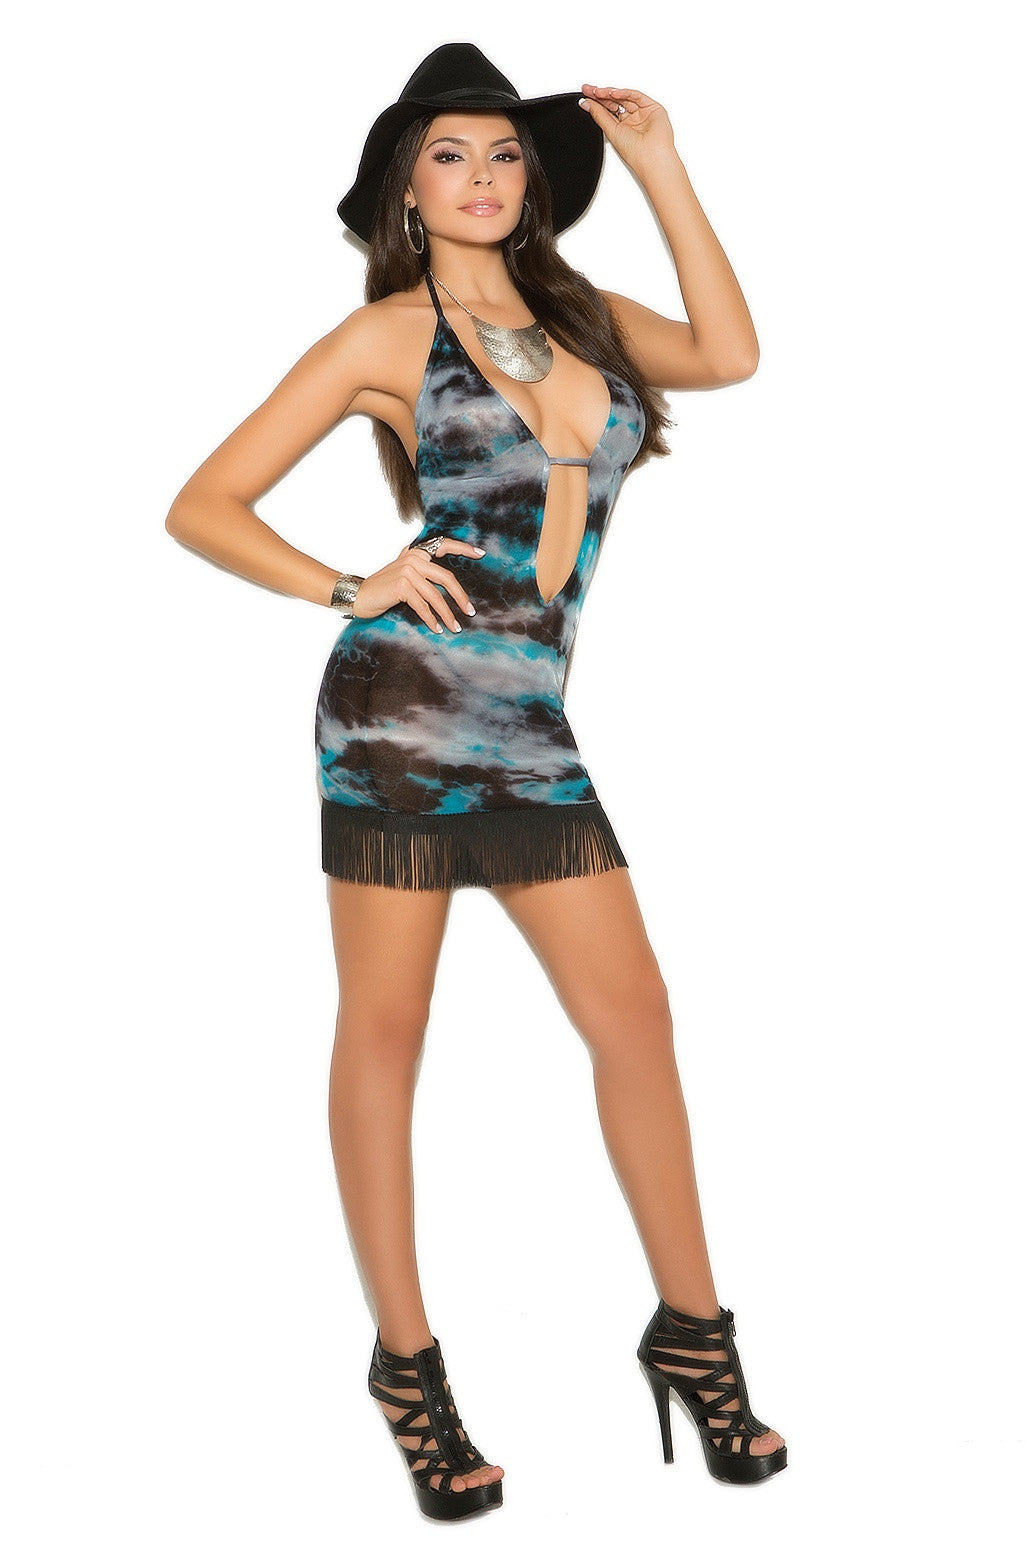 EM-82006 Colorful party dress - Sexylingerieland  - 1